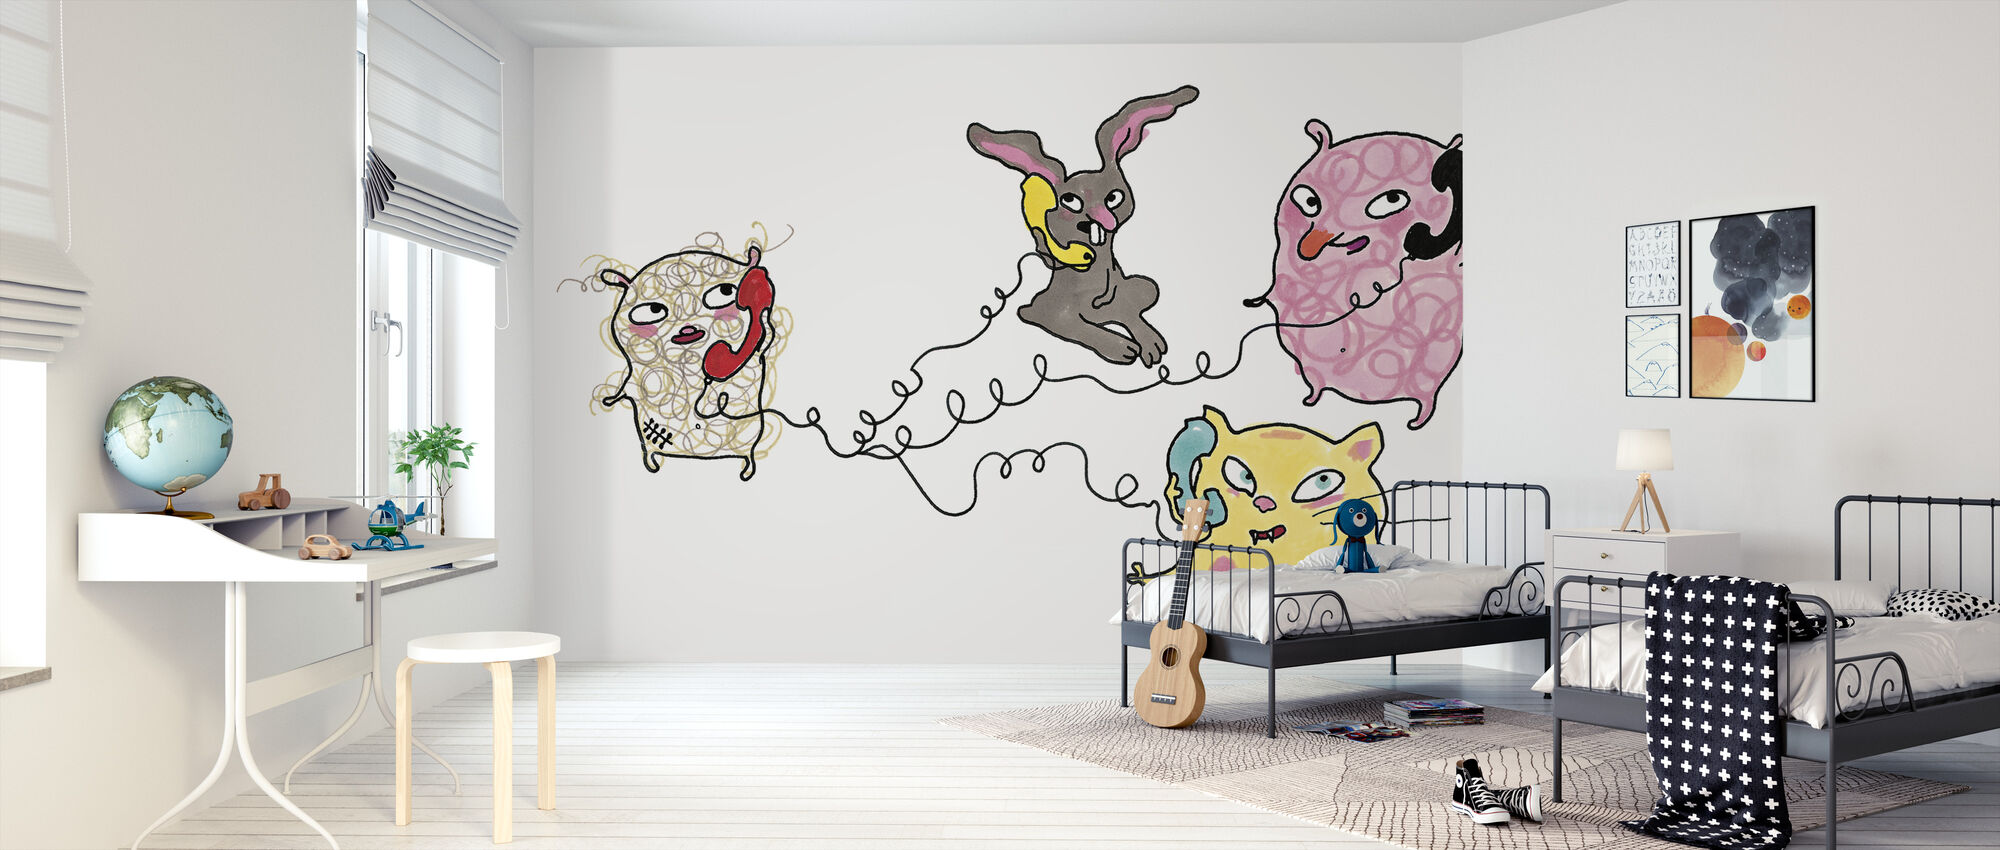 Who calls who - Wallpaper - Kids Room